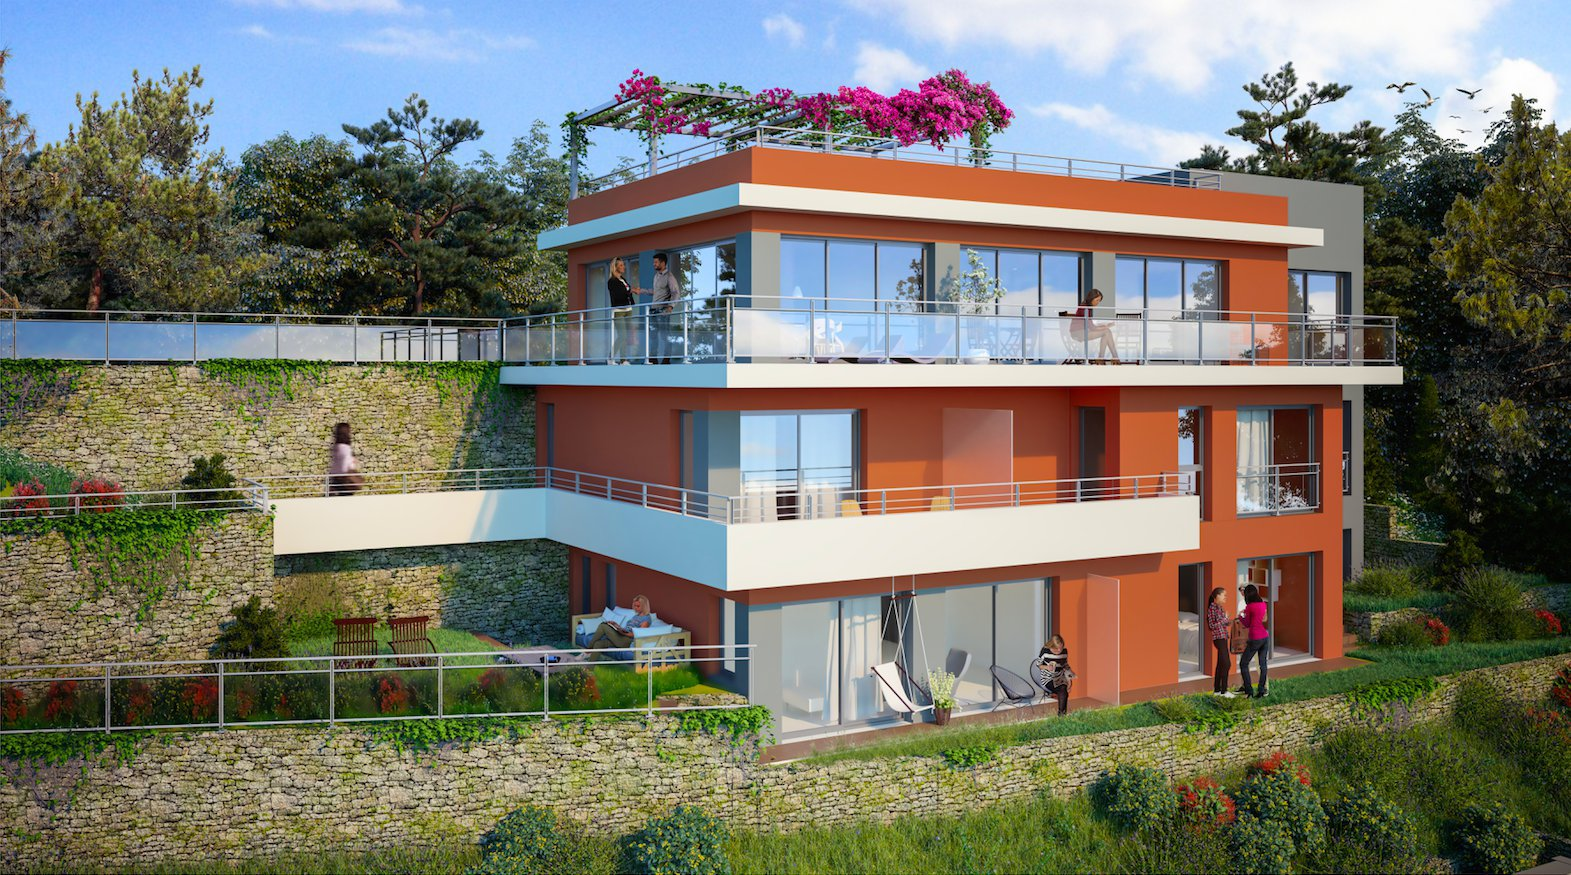 ROQUEBRUNE CAP MARTIN/CABBE: 2-BEDROOM PENTHOUSE APARTMENT WITH SEA VIEW AND GARDEN